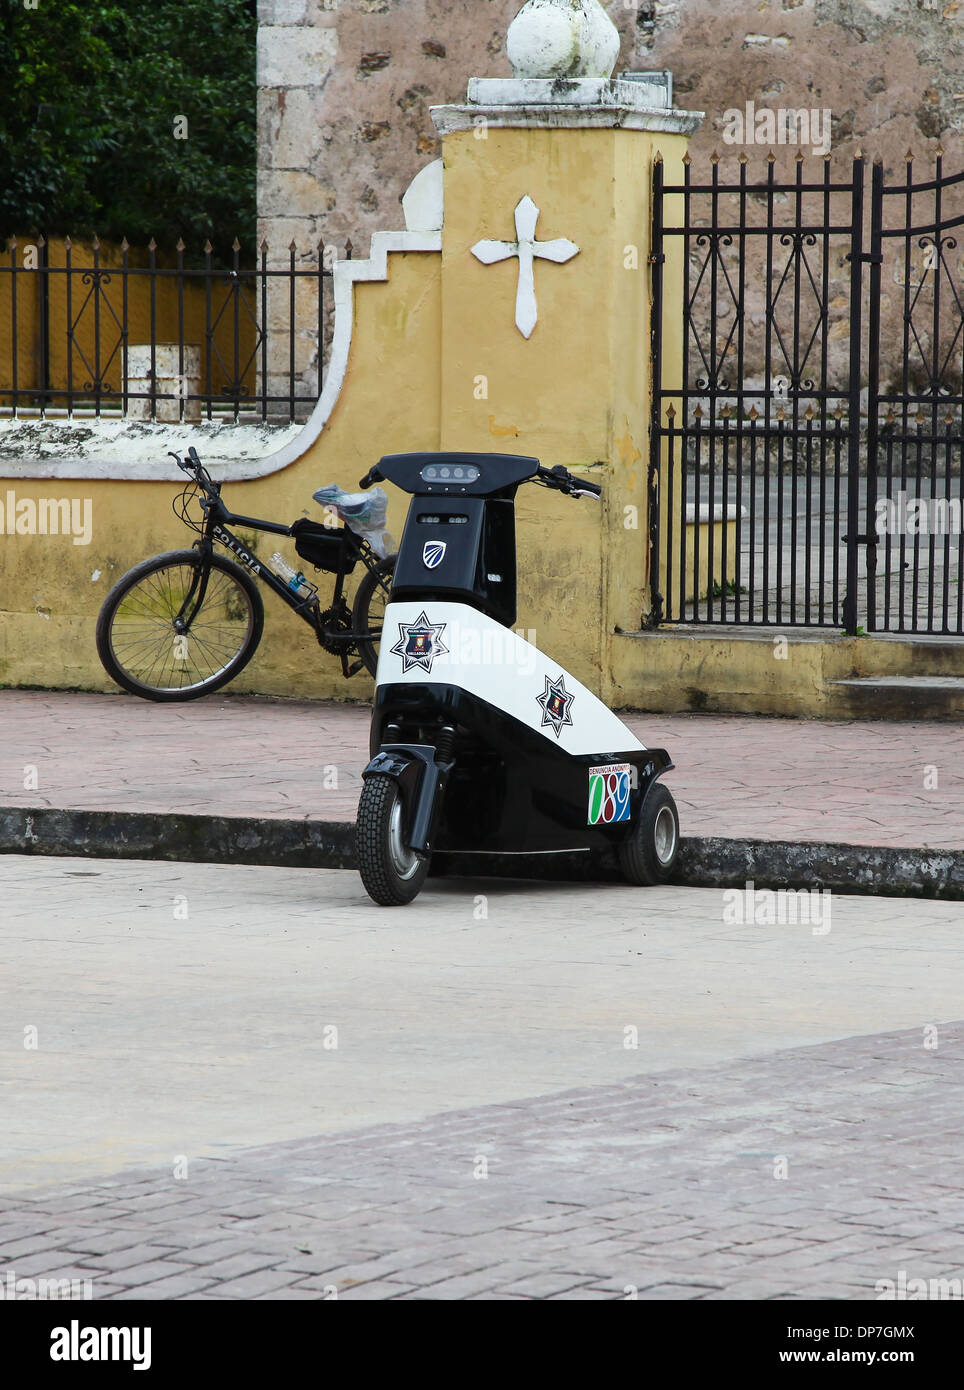 a three wheeled police scooter in the Mexican city of Valladolid Mexico - Stock Image